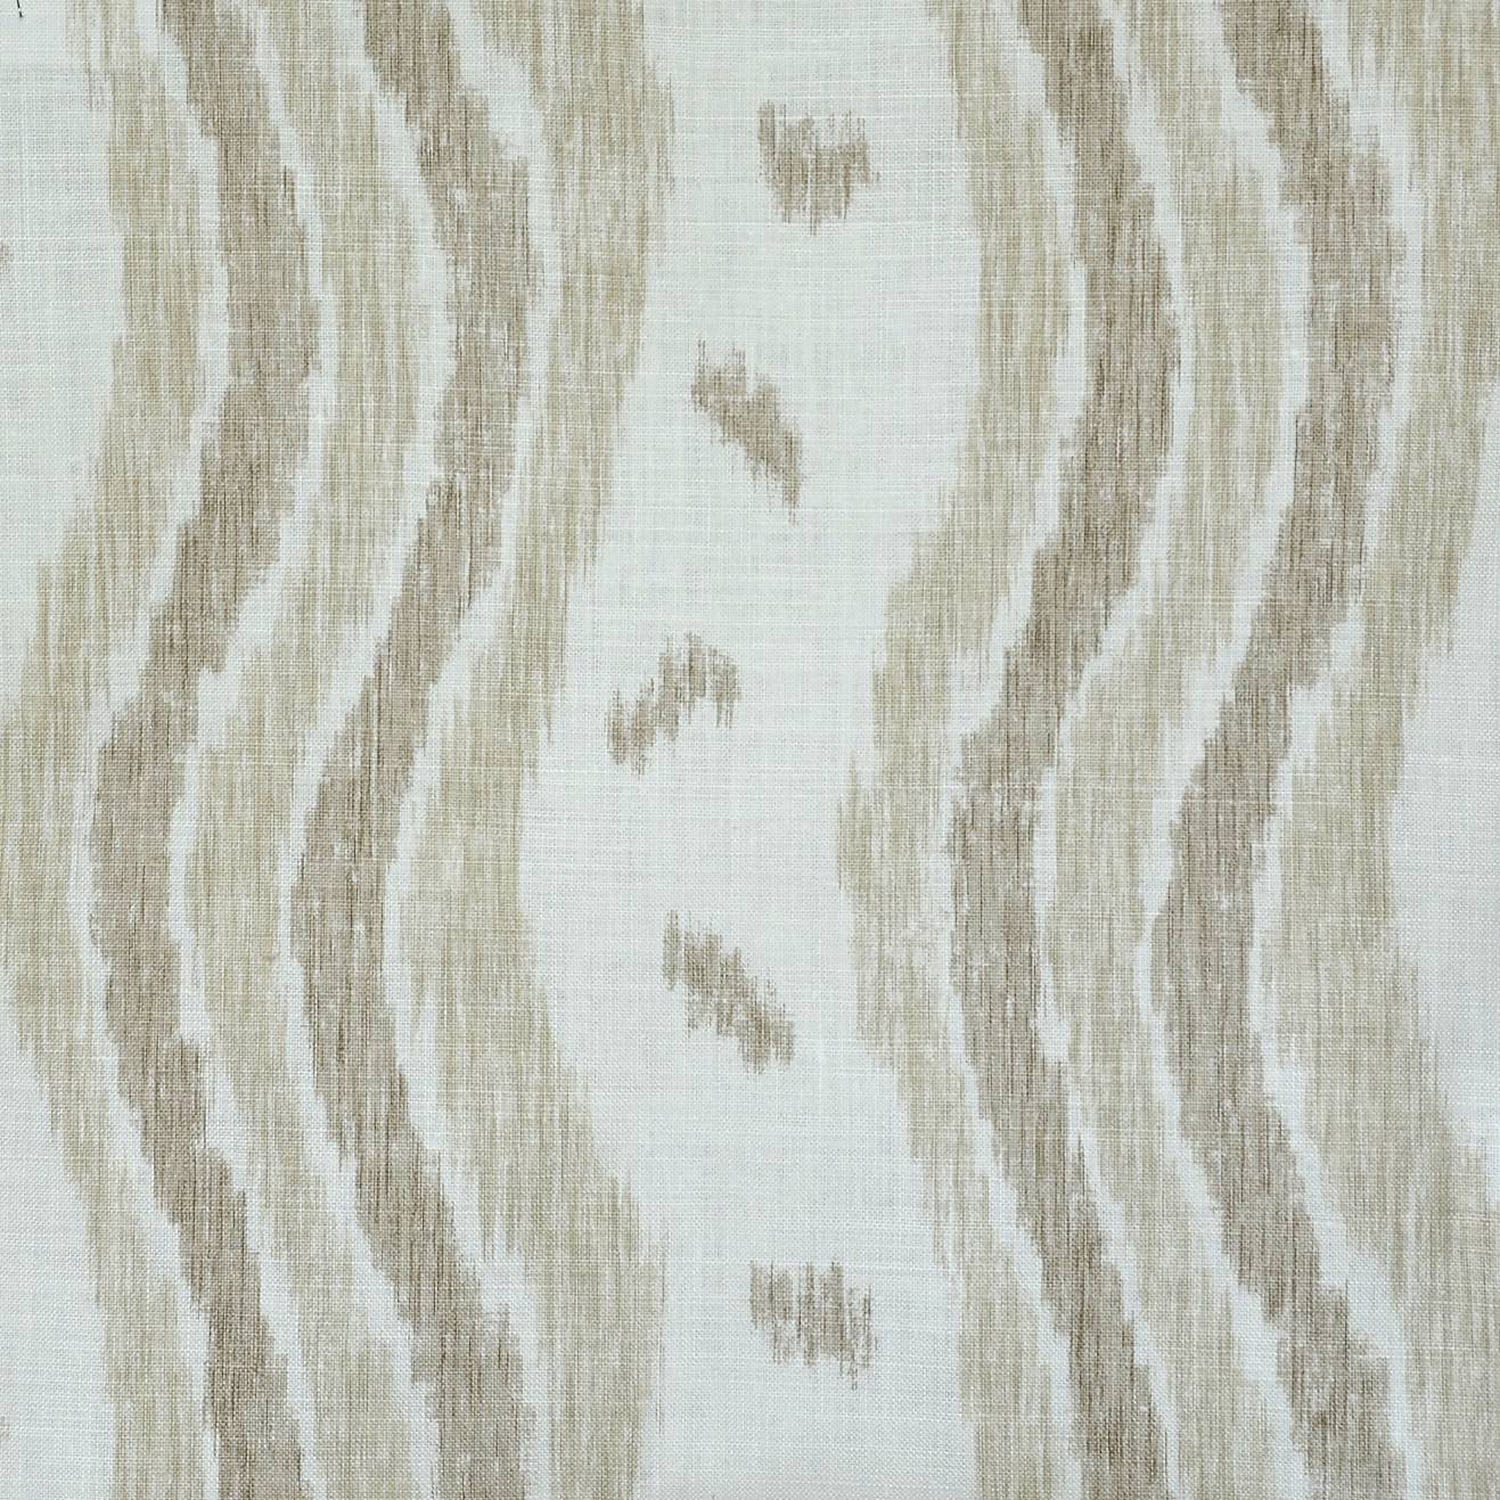 <p><strong>IKAT STRIPE</strong>taupe/oyster 9300-03<a href=/collection-3/ikat-stripe-taupe-oyster-9300-03>More →</a></p>